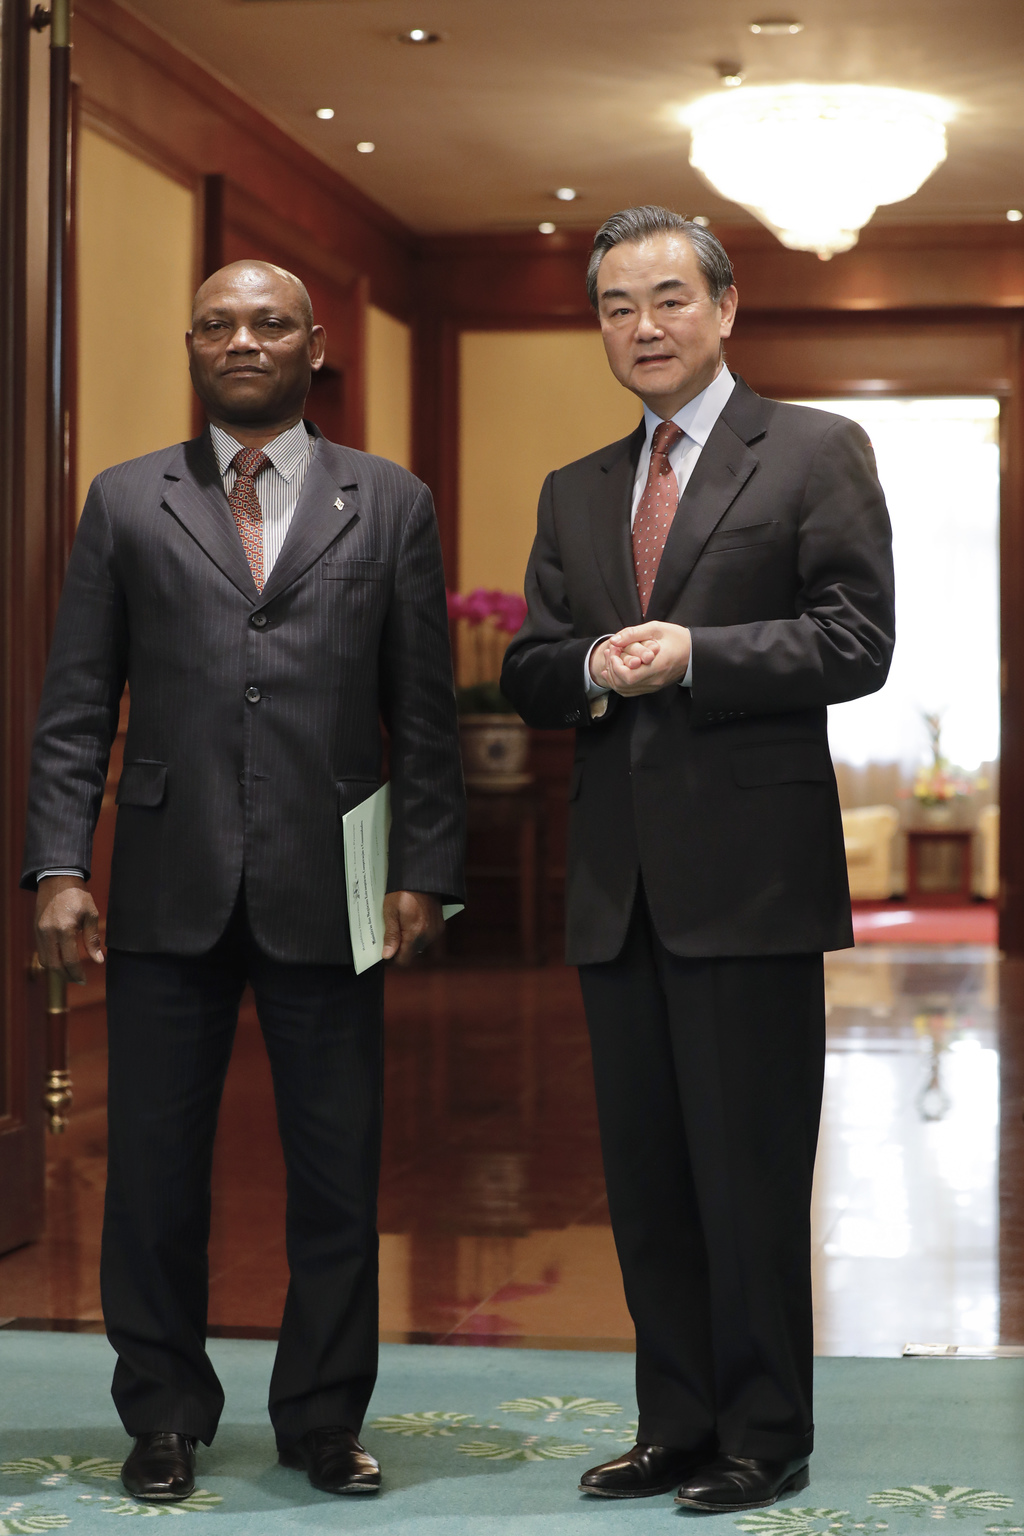 Chinese Foreign Minister Wang Yi, right, stands with his Sao Tome counterpart Urbino Botelho after a signing ceremony at the Diaoyutai ...